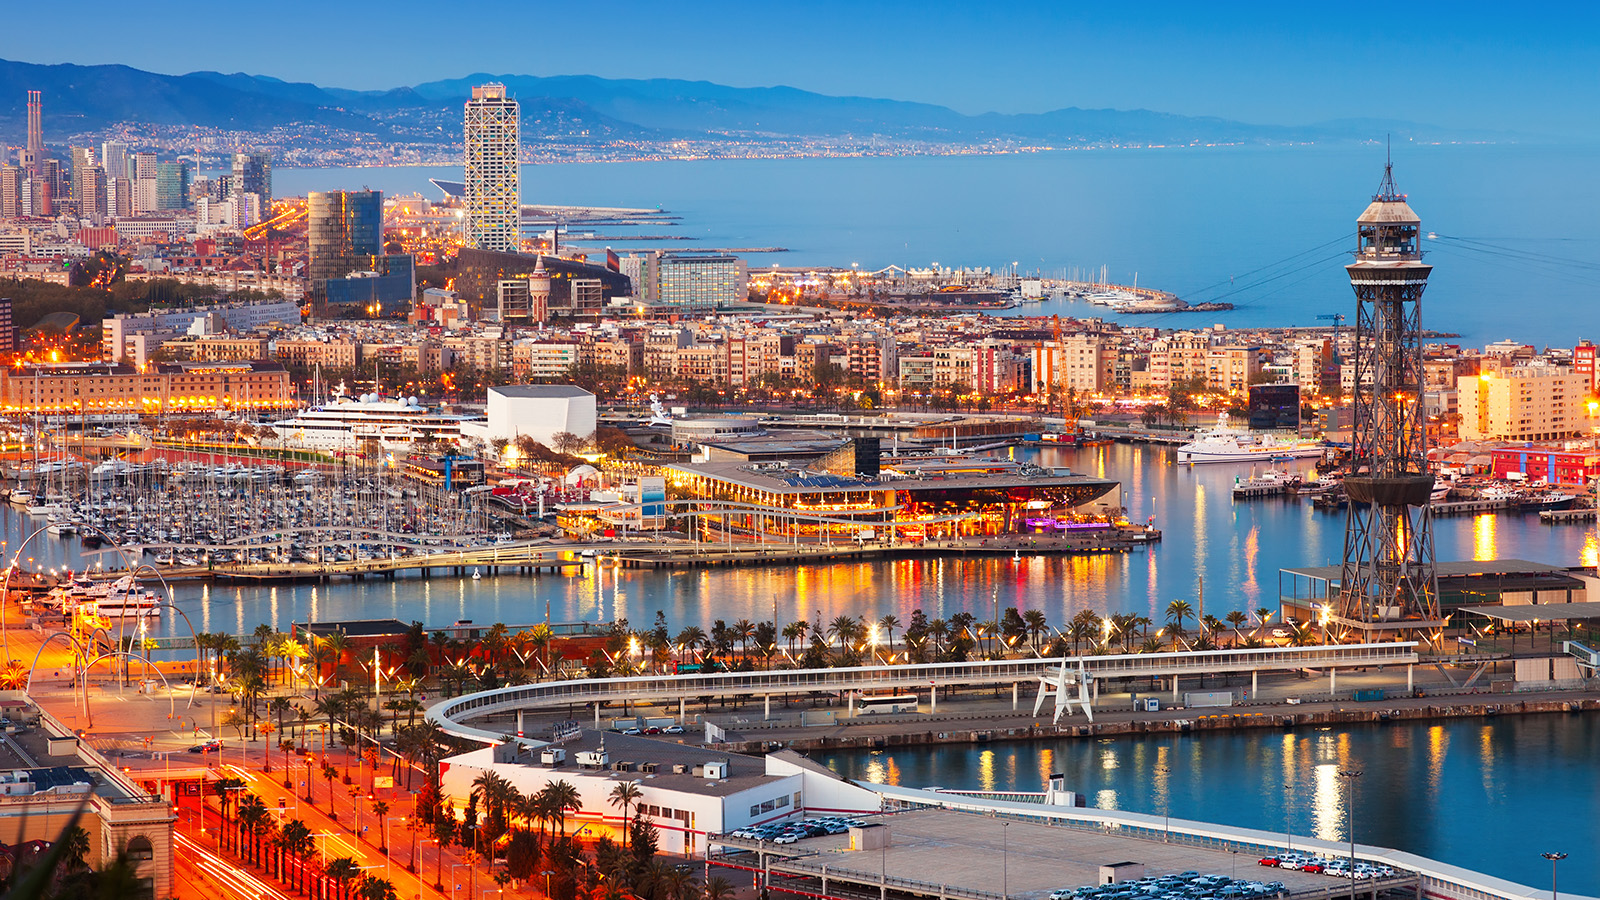 Marina Port Vell, Barcelona, Spain